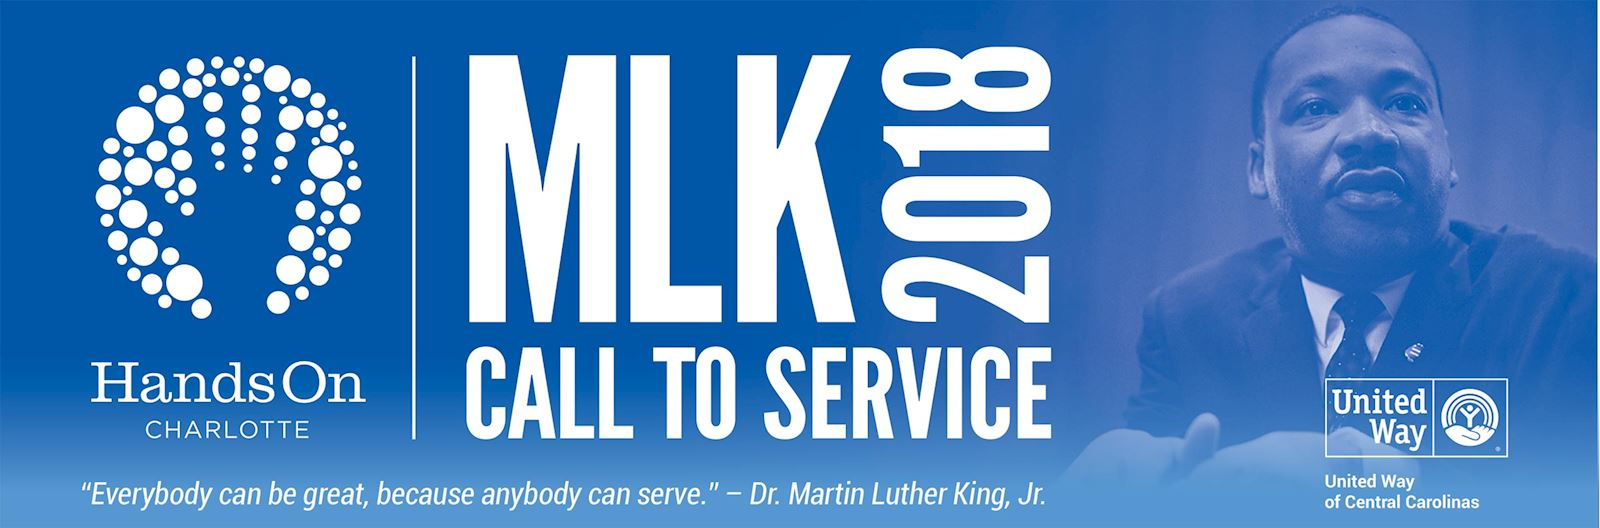 MLK_Call_To_Service